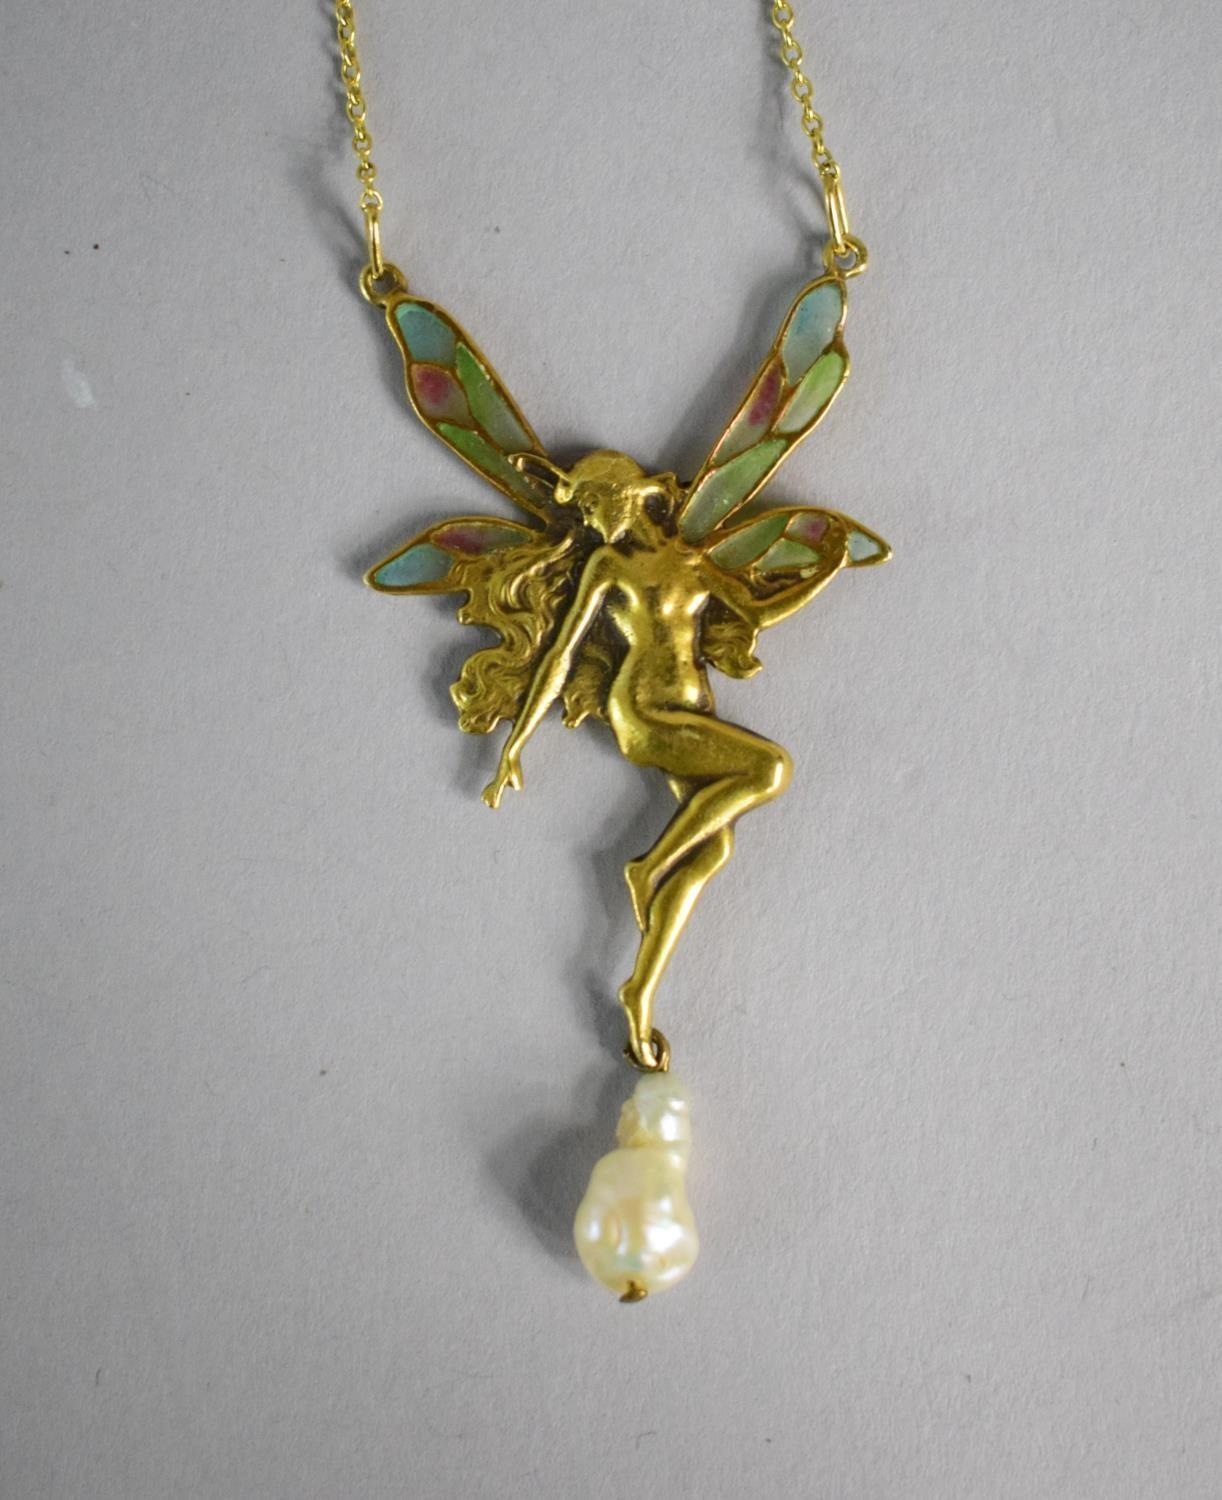 Lot 330 - A 14ct Gold Pendant in the Form of an Angel with Coloured Plique a Jour Translucent Wings Baroque